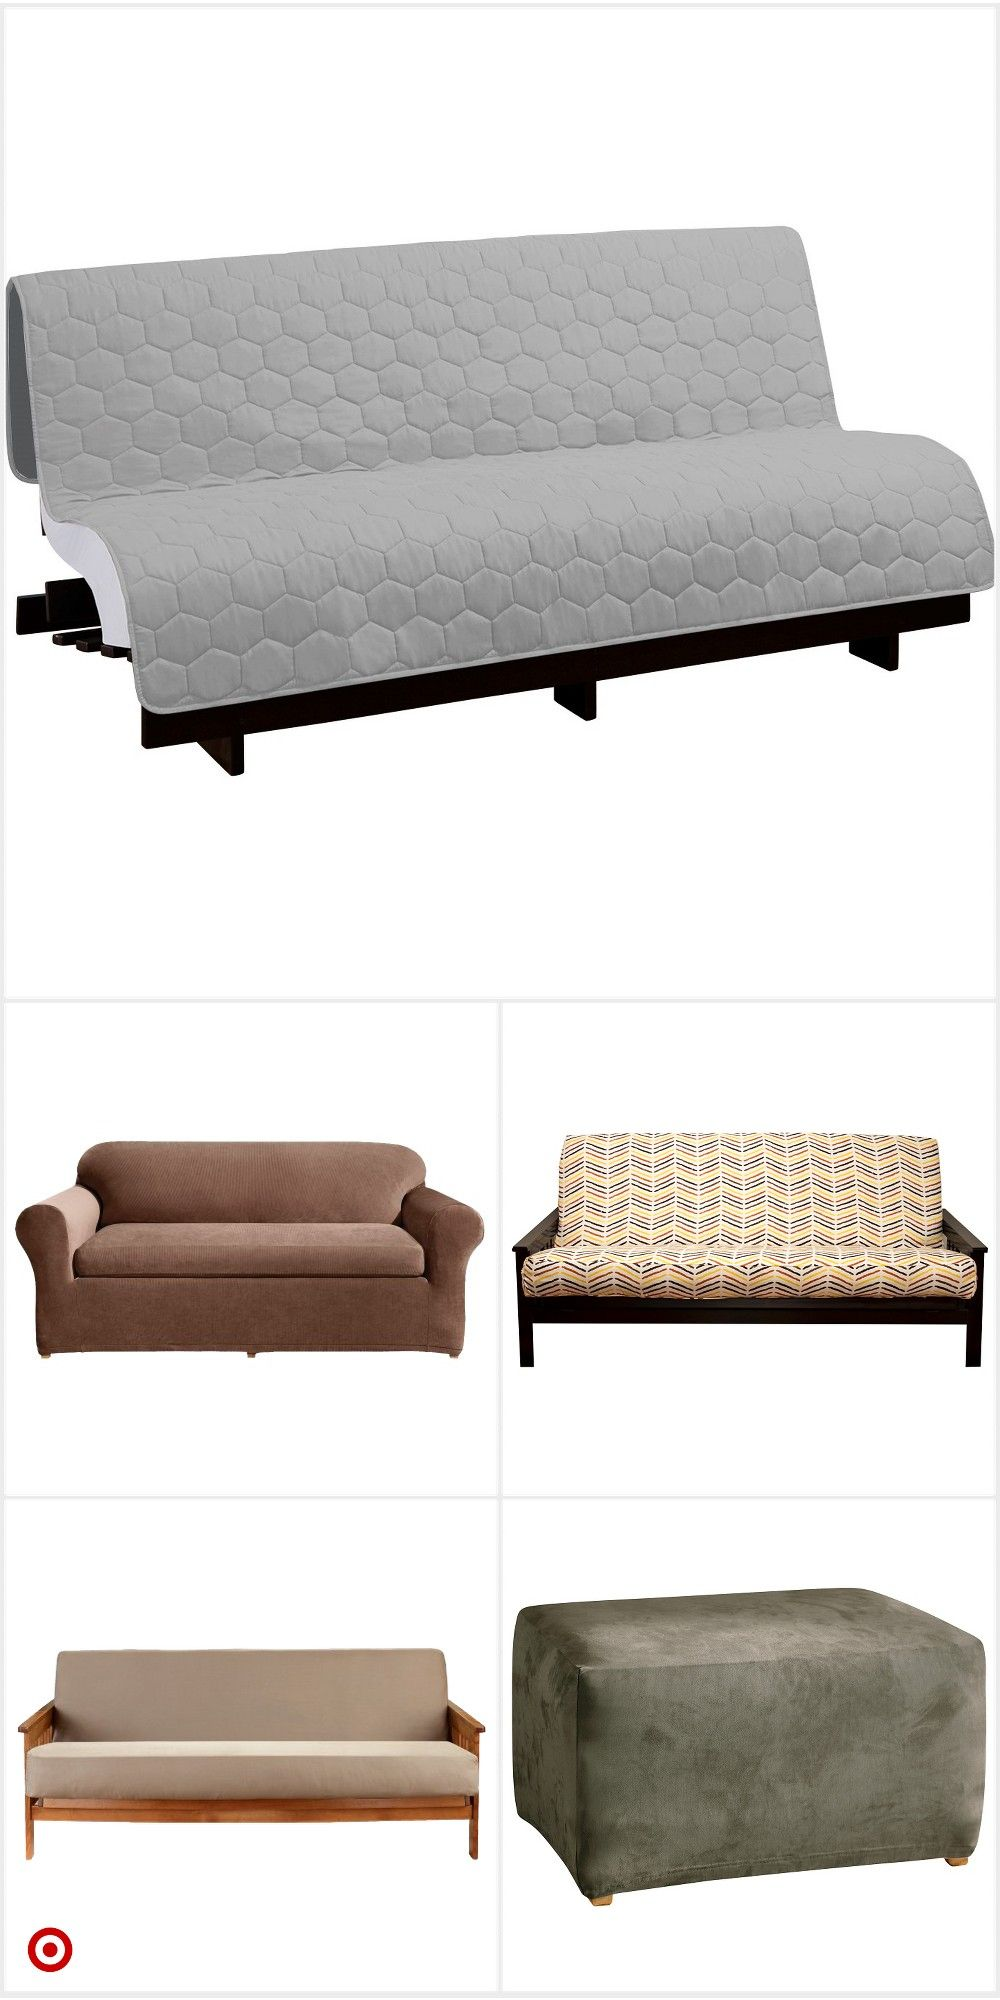 Target For Futon Cover You Will Love At Great Low